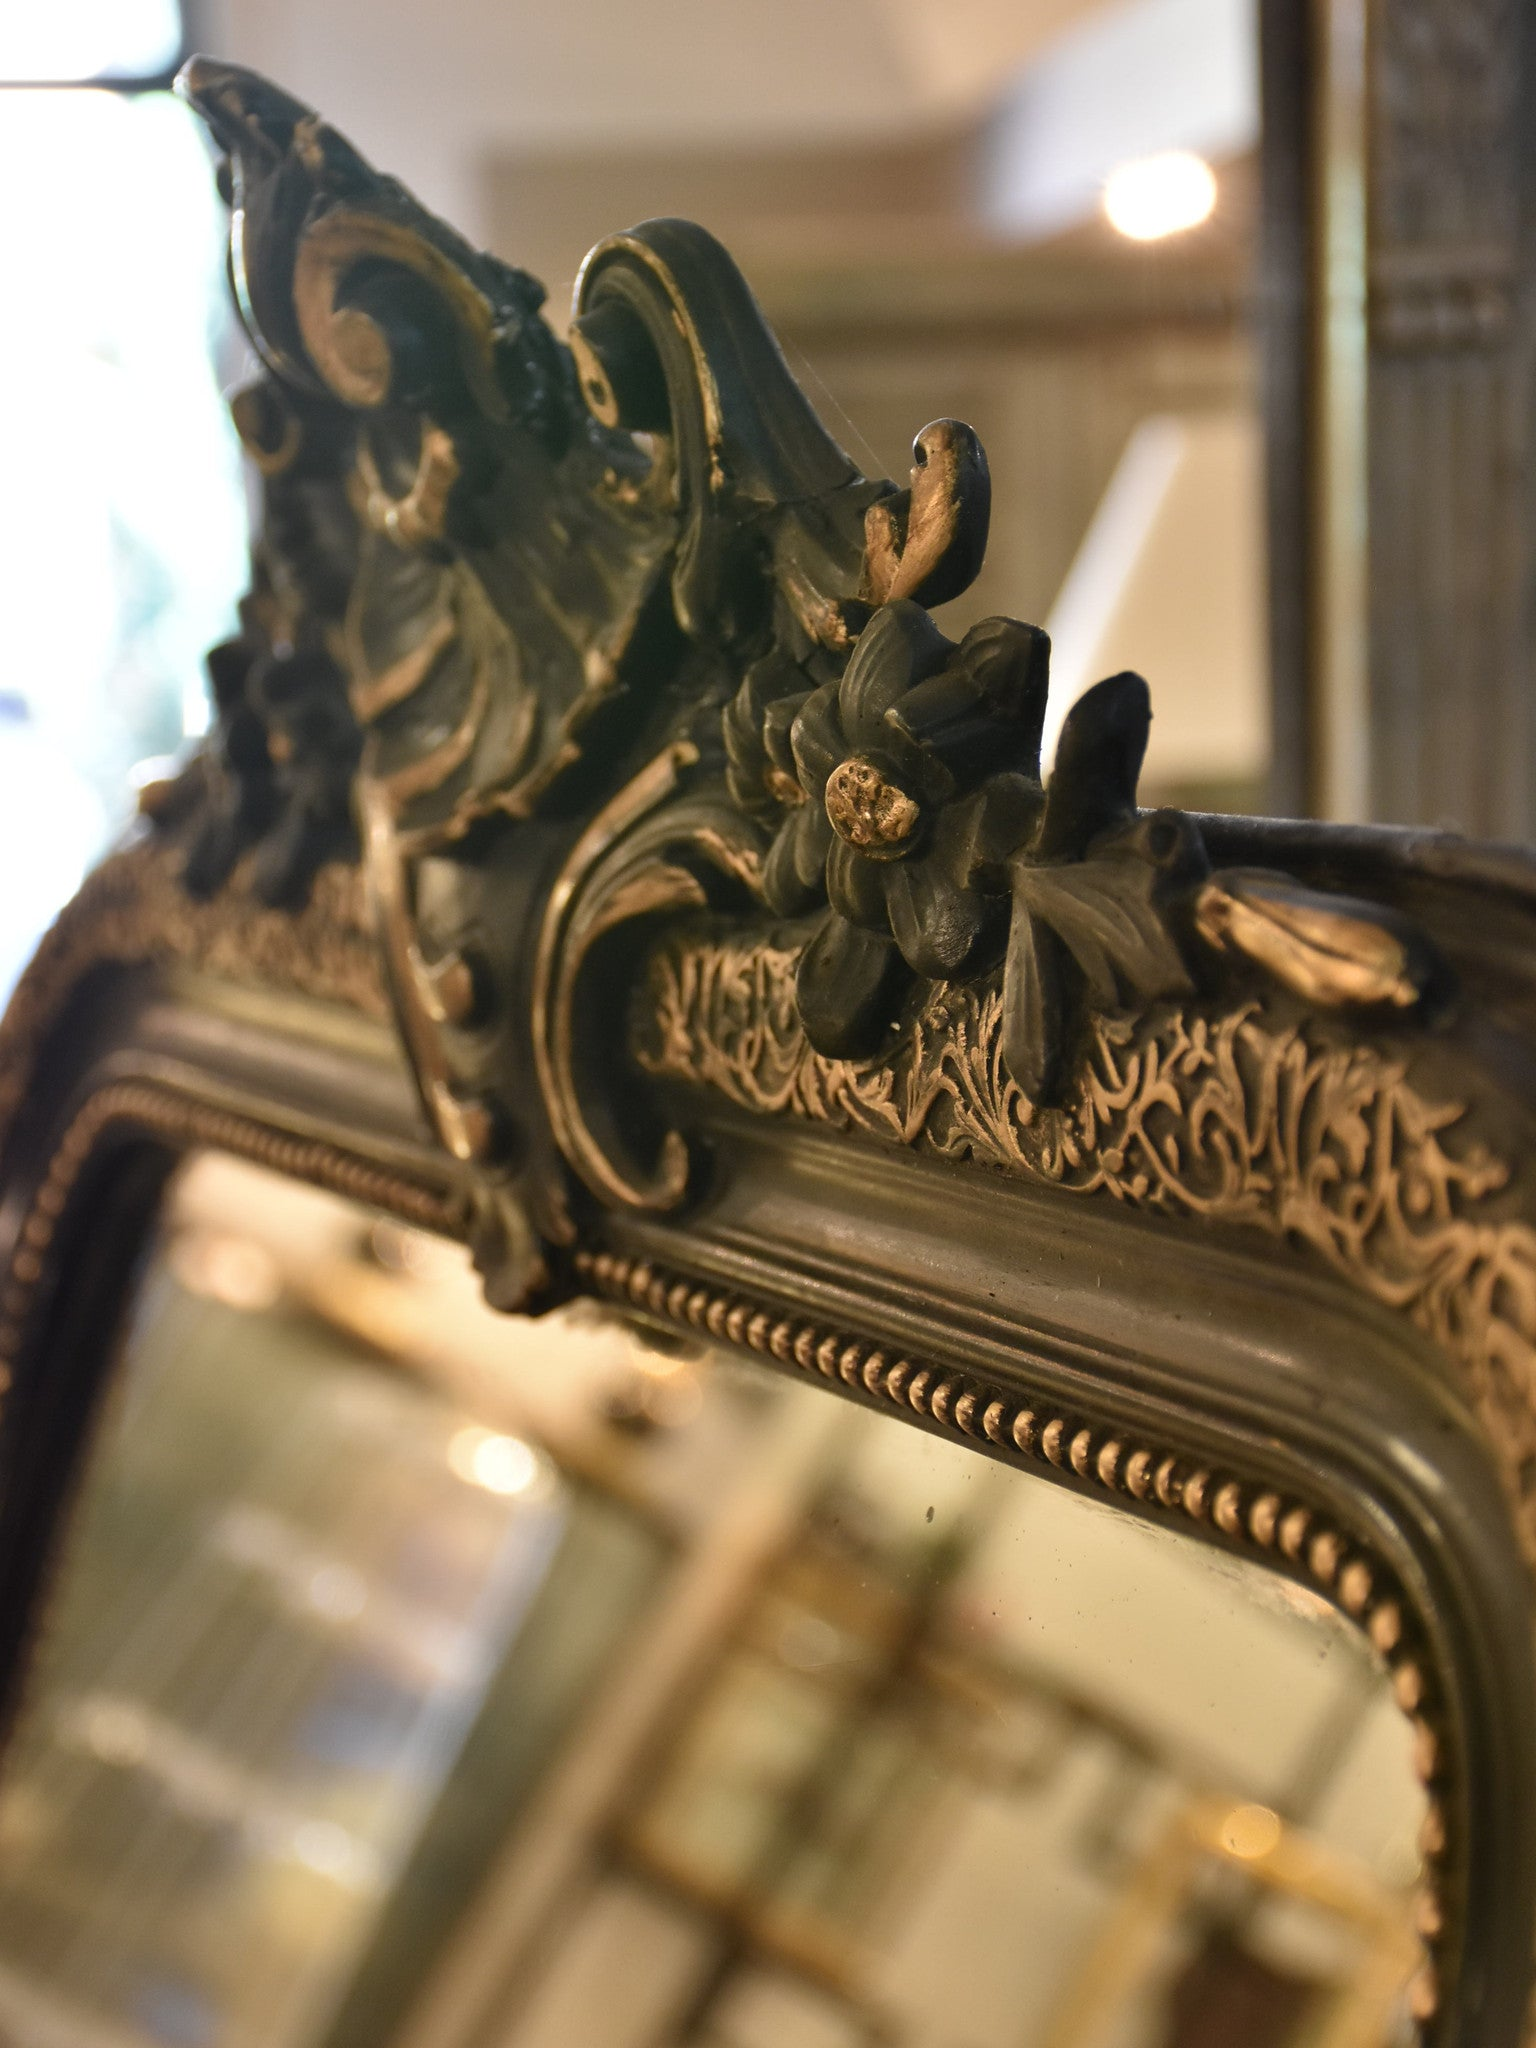 Late 19th century Napoleon III mirror with black and gold frame